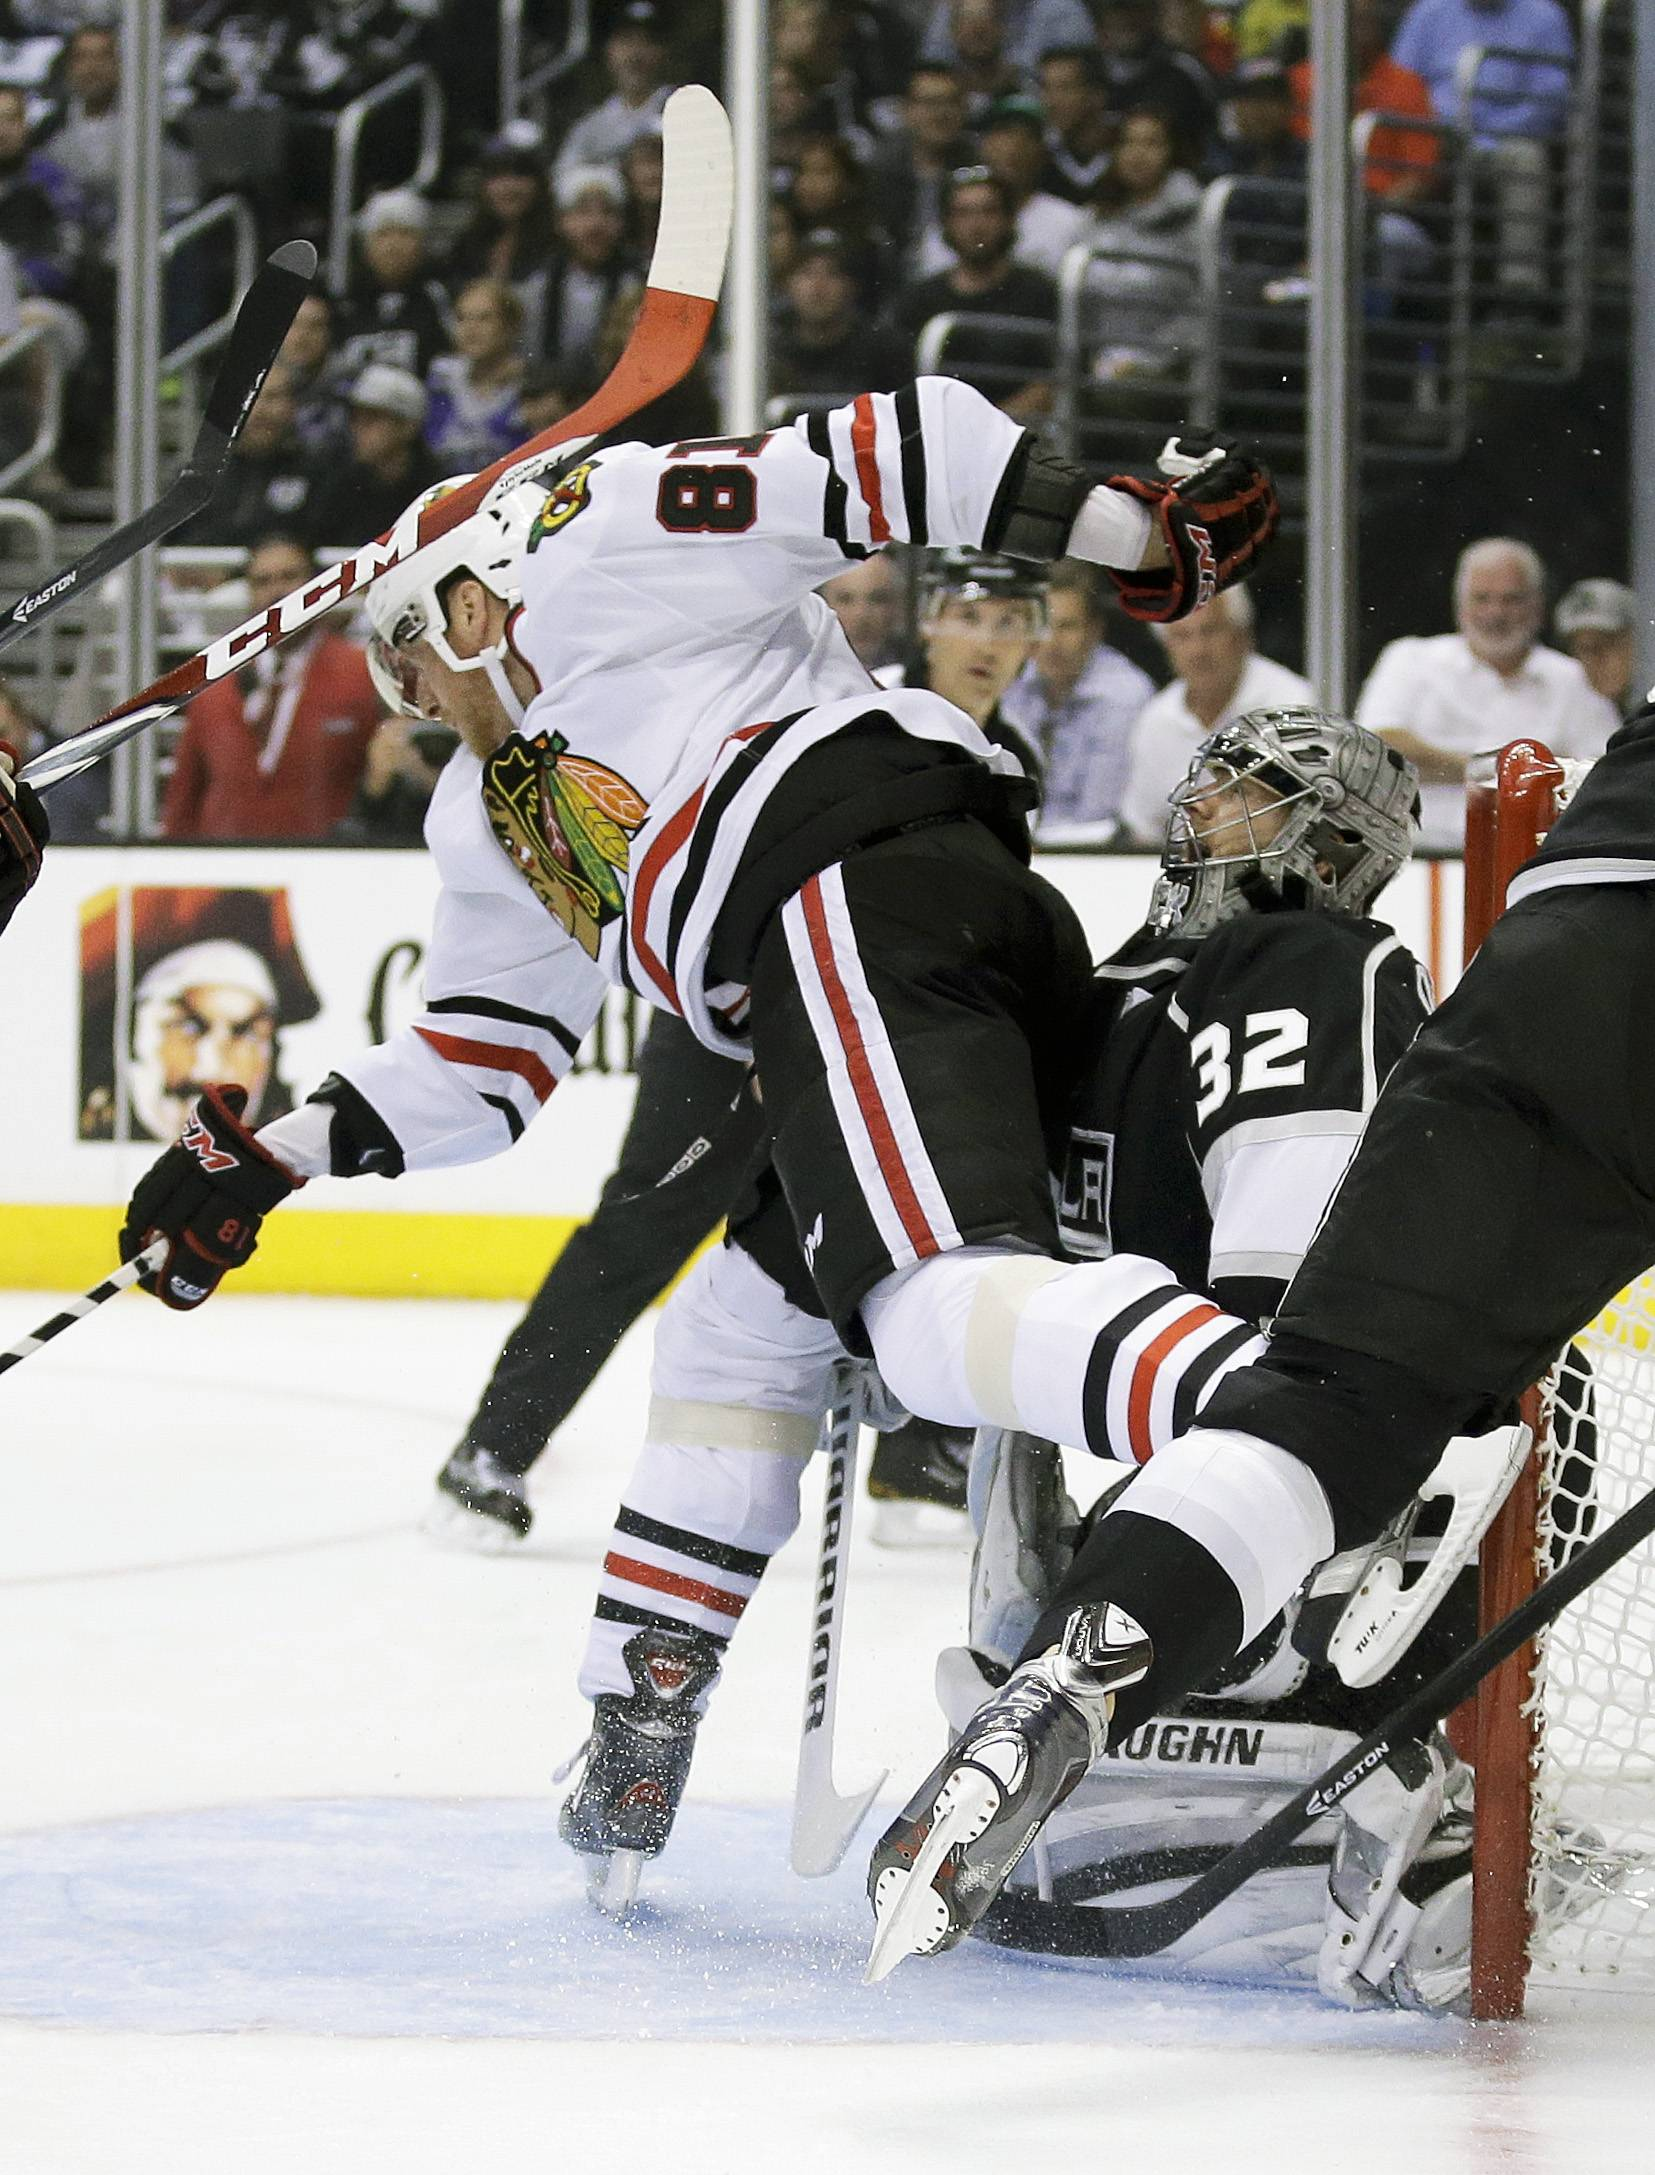 Chicago Blackhawks right wing Marian Hossa, left, collides with Los Angeles Kings goalie Jonathan Quick during the first period of Game 4 of the Western Conference finals of the NHL hockey Stanley Cup playoffs in Los Angeles, Monday, May 26, 2014.